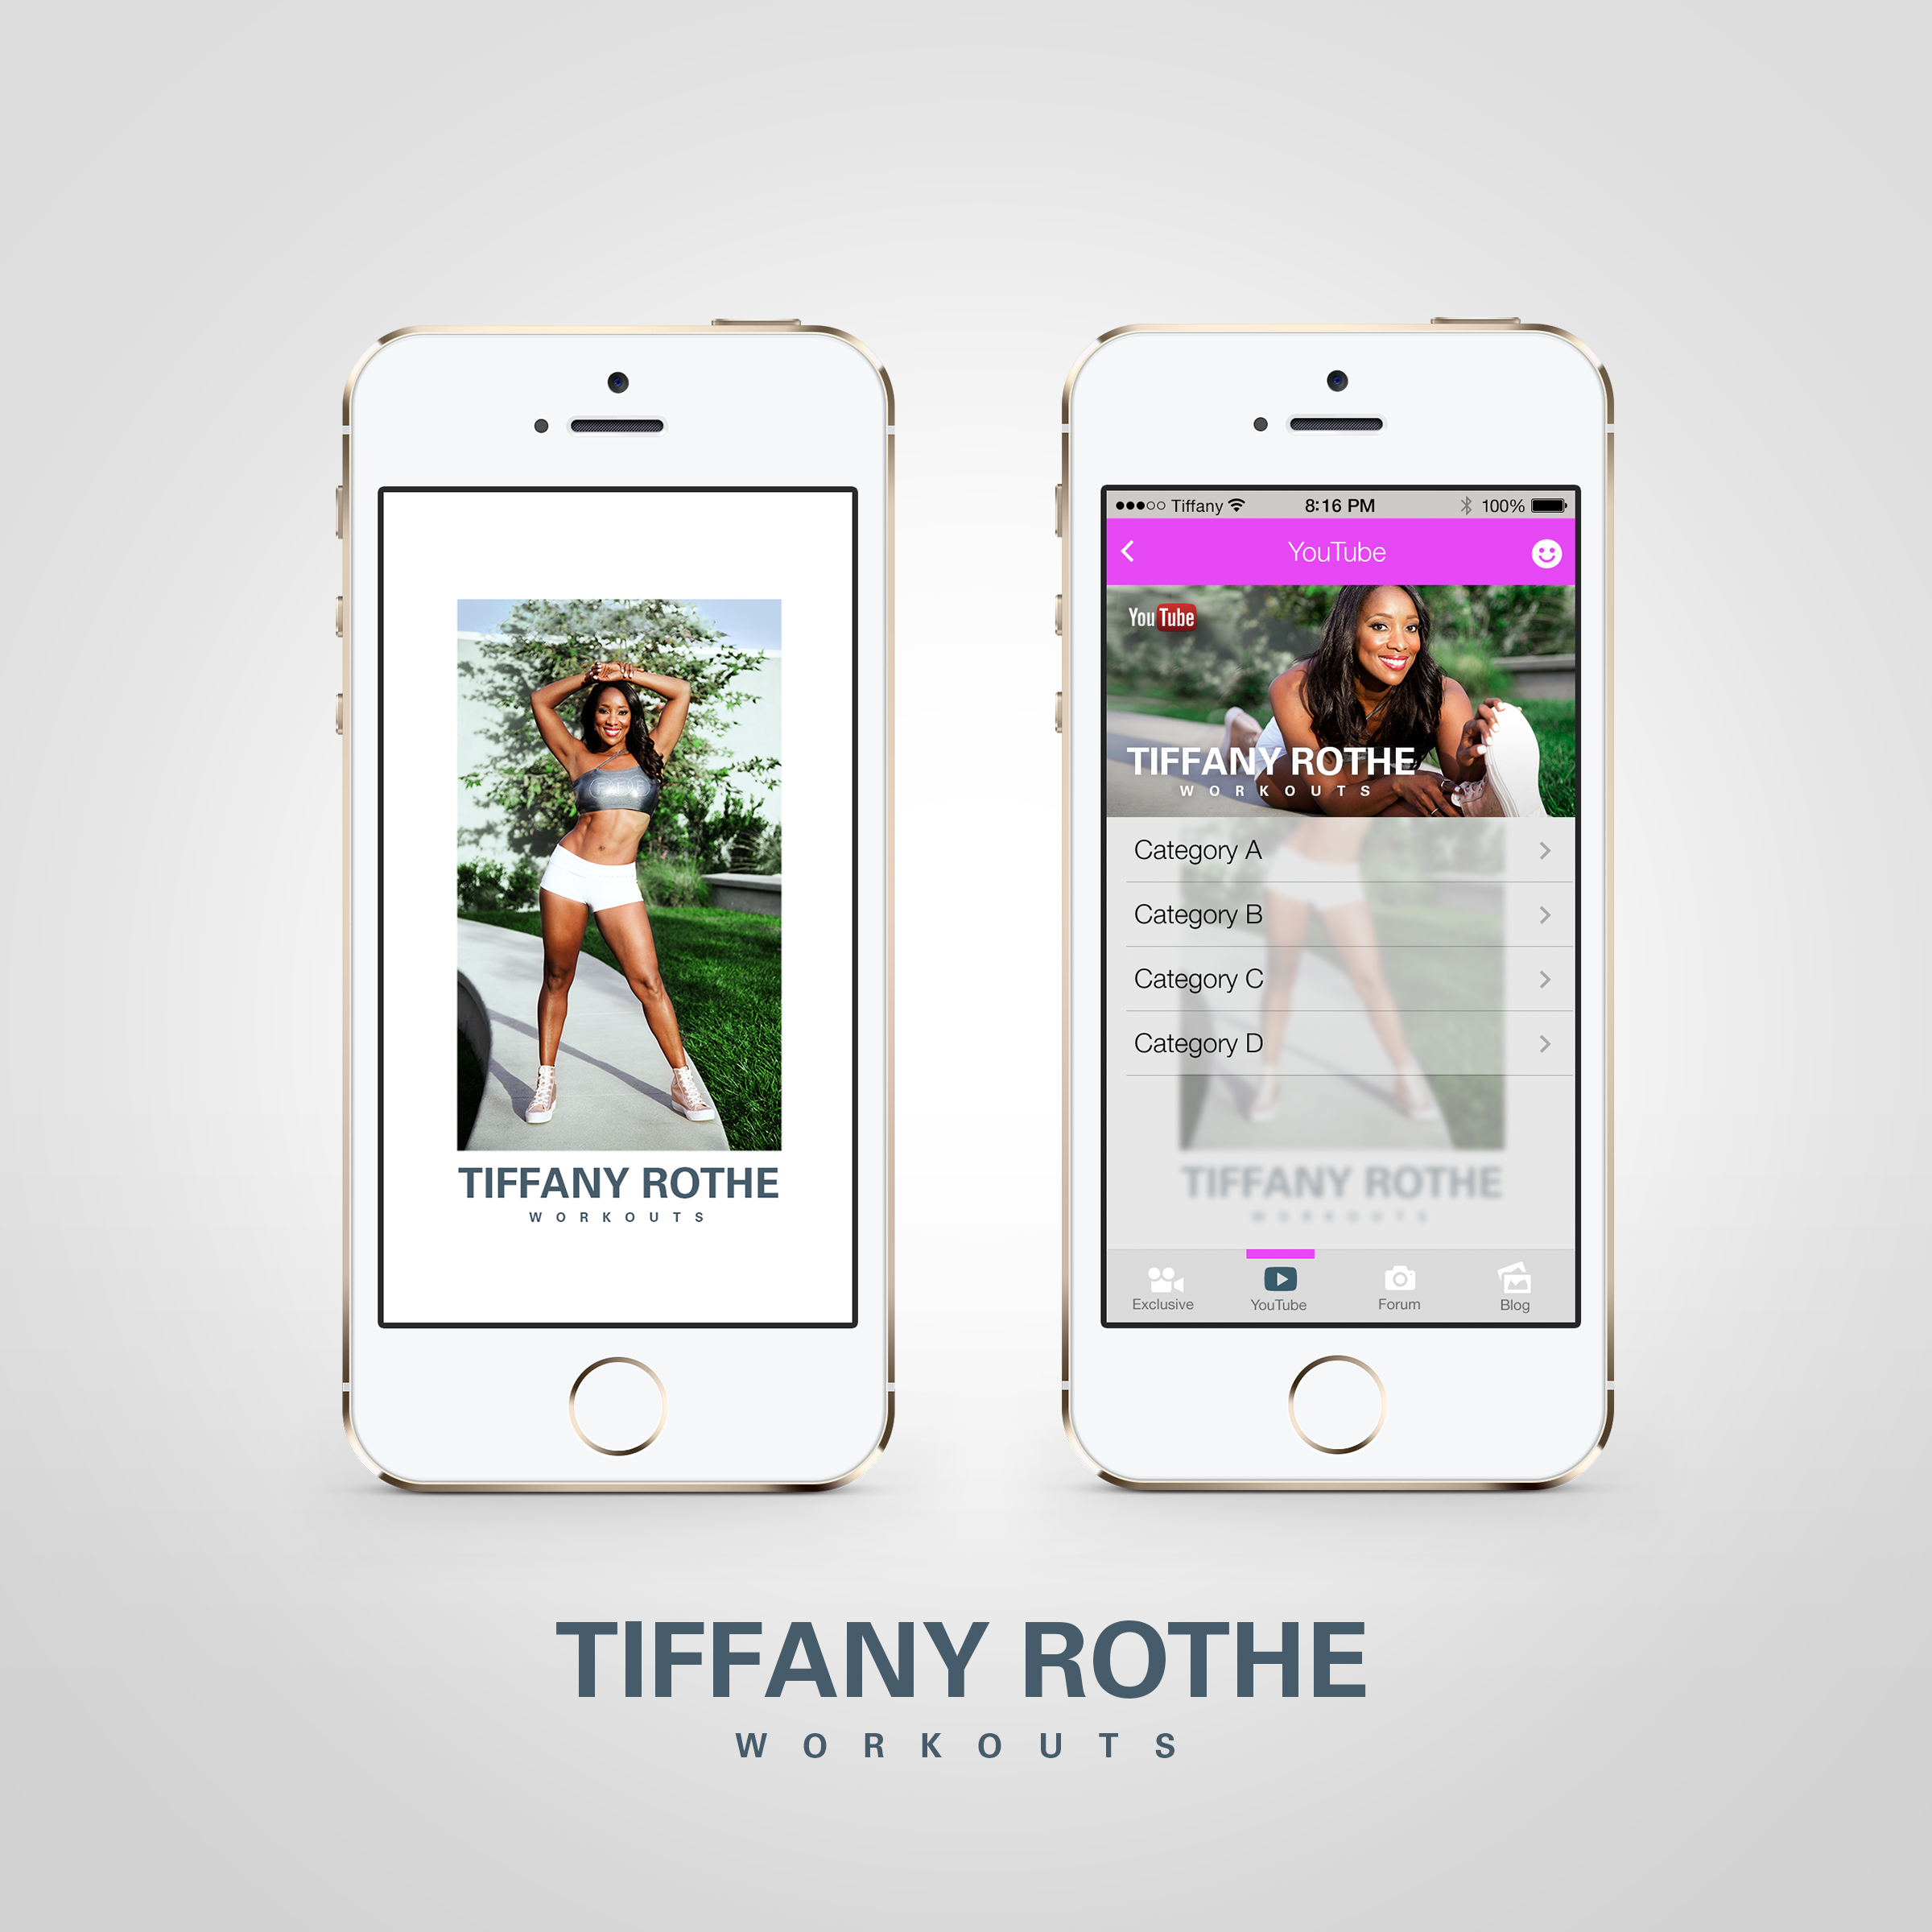 Tiffany Rothe Official app